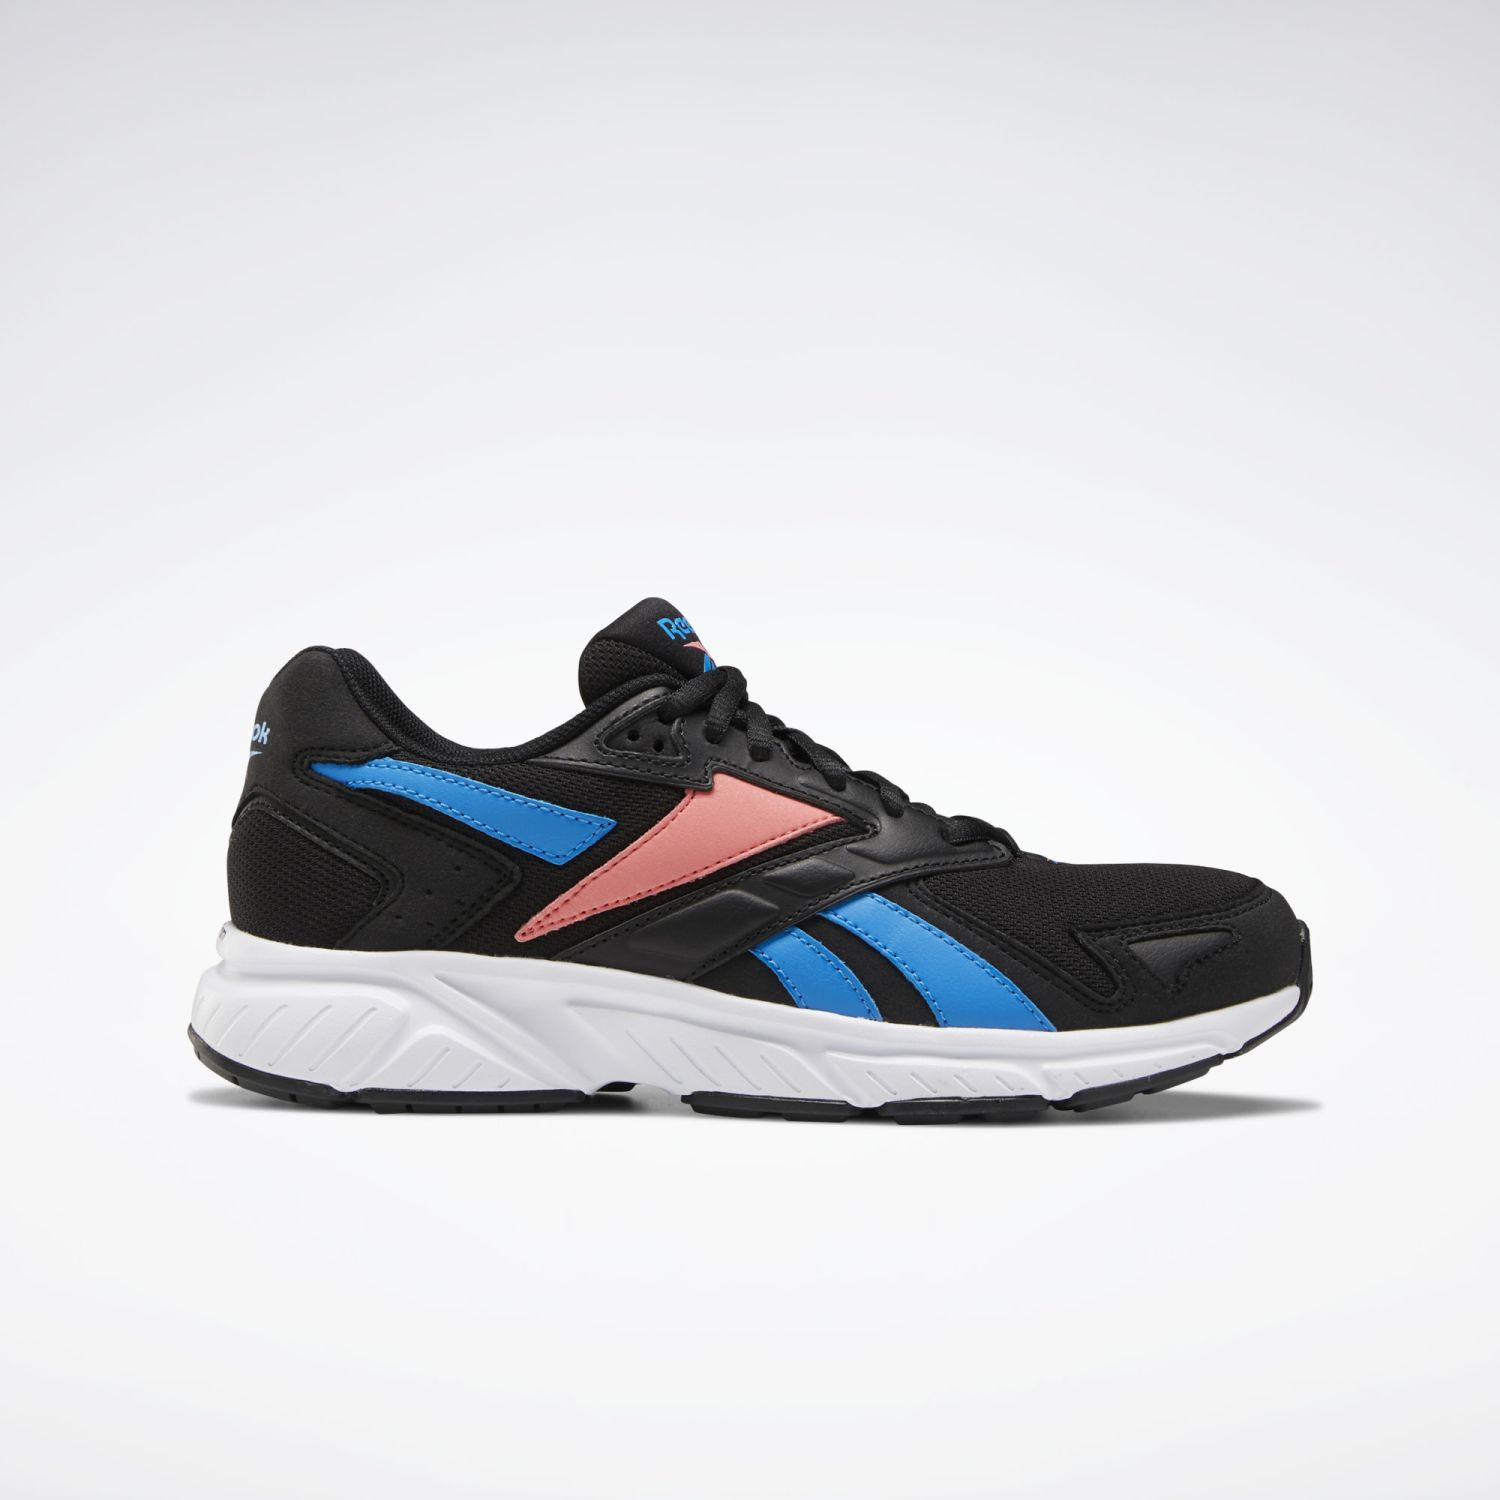 Reebok REEBOK ROYAL HYPERIUM Negro / azul Walking